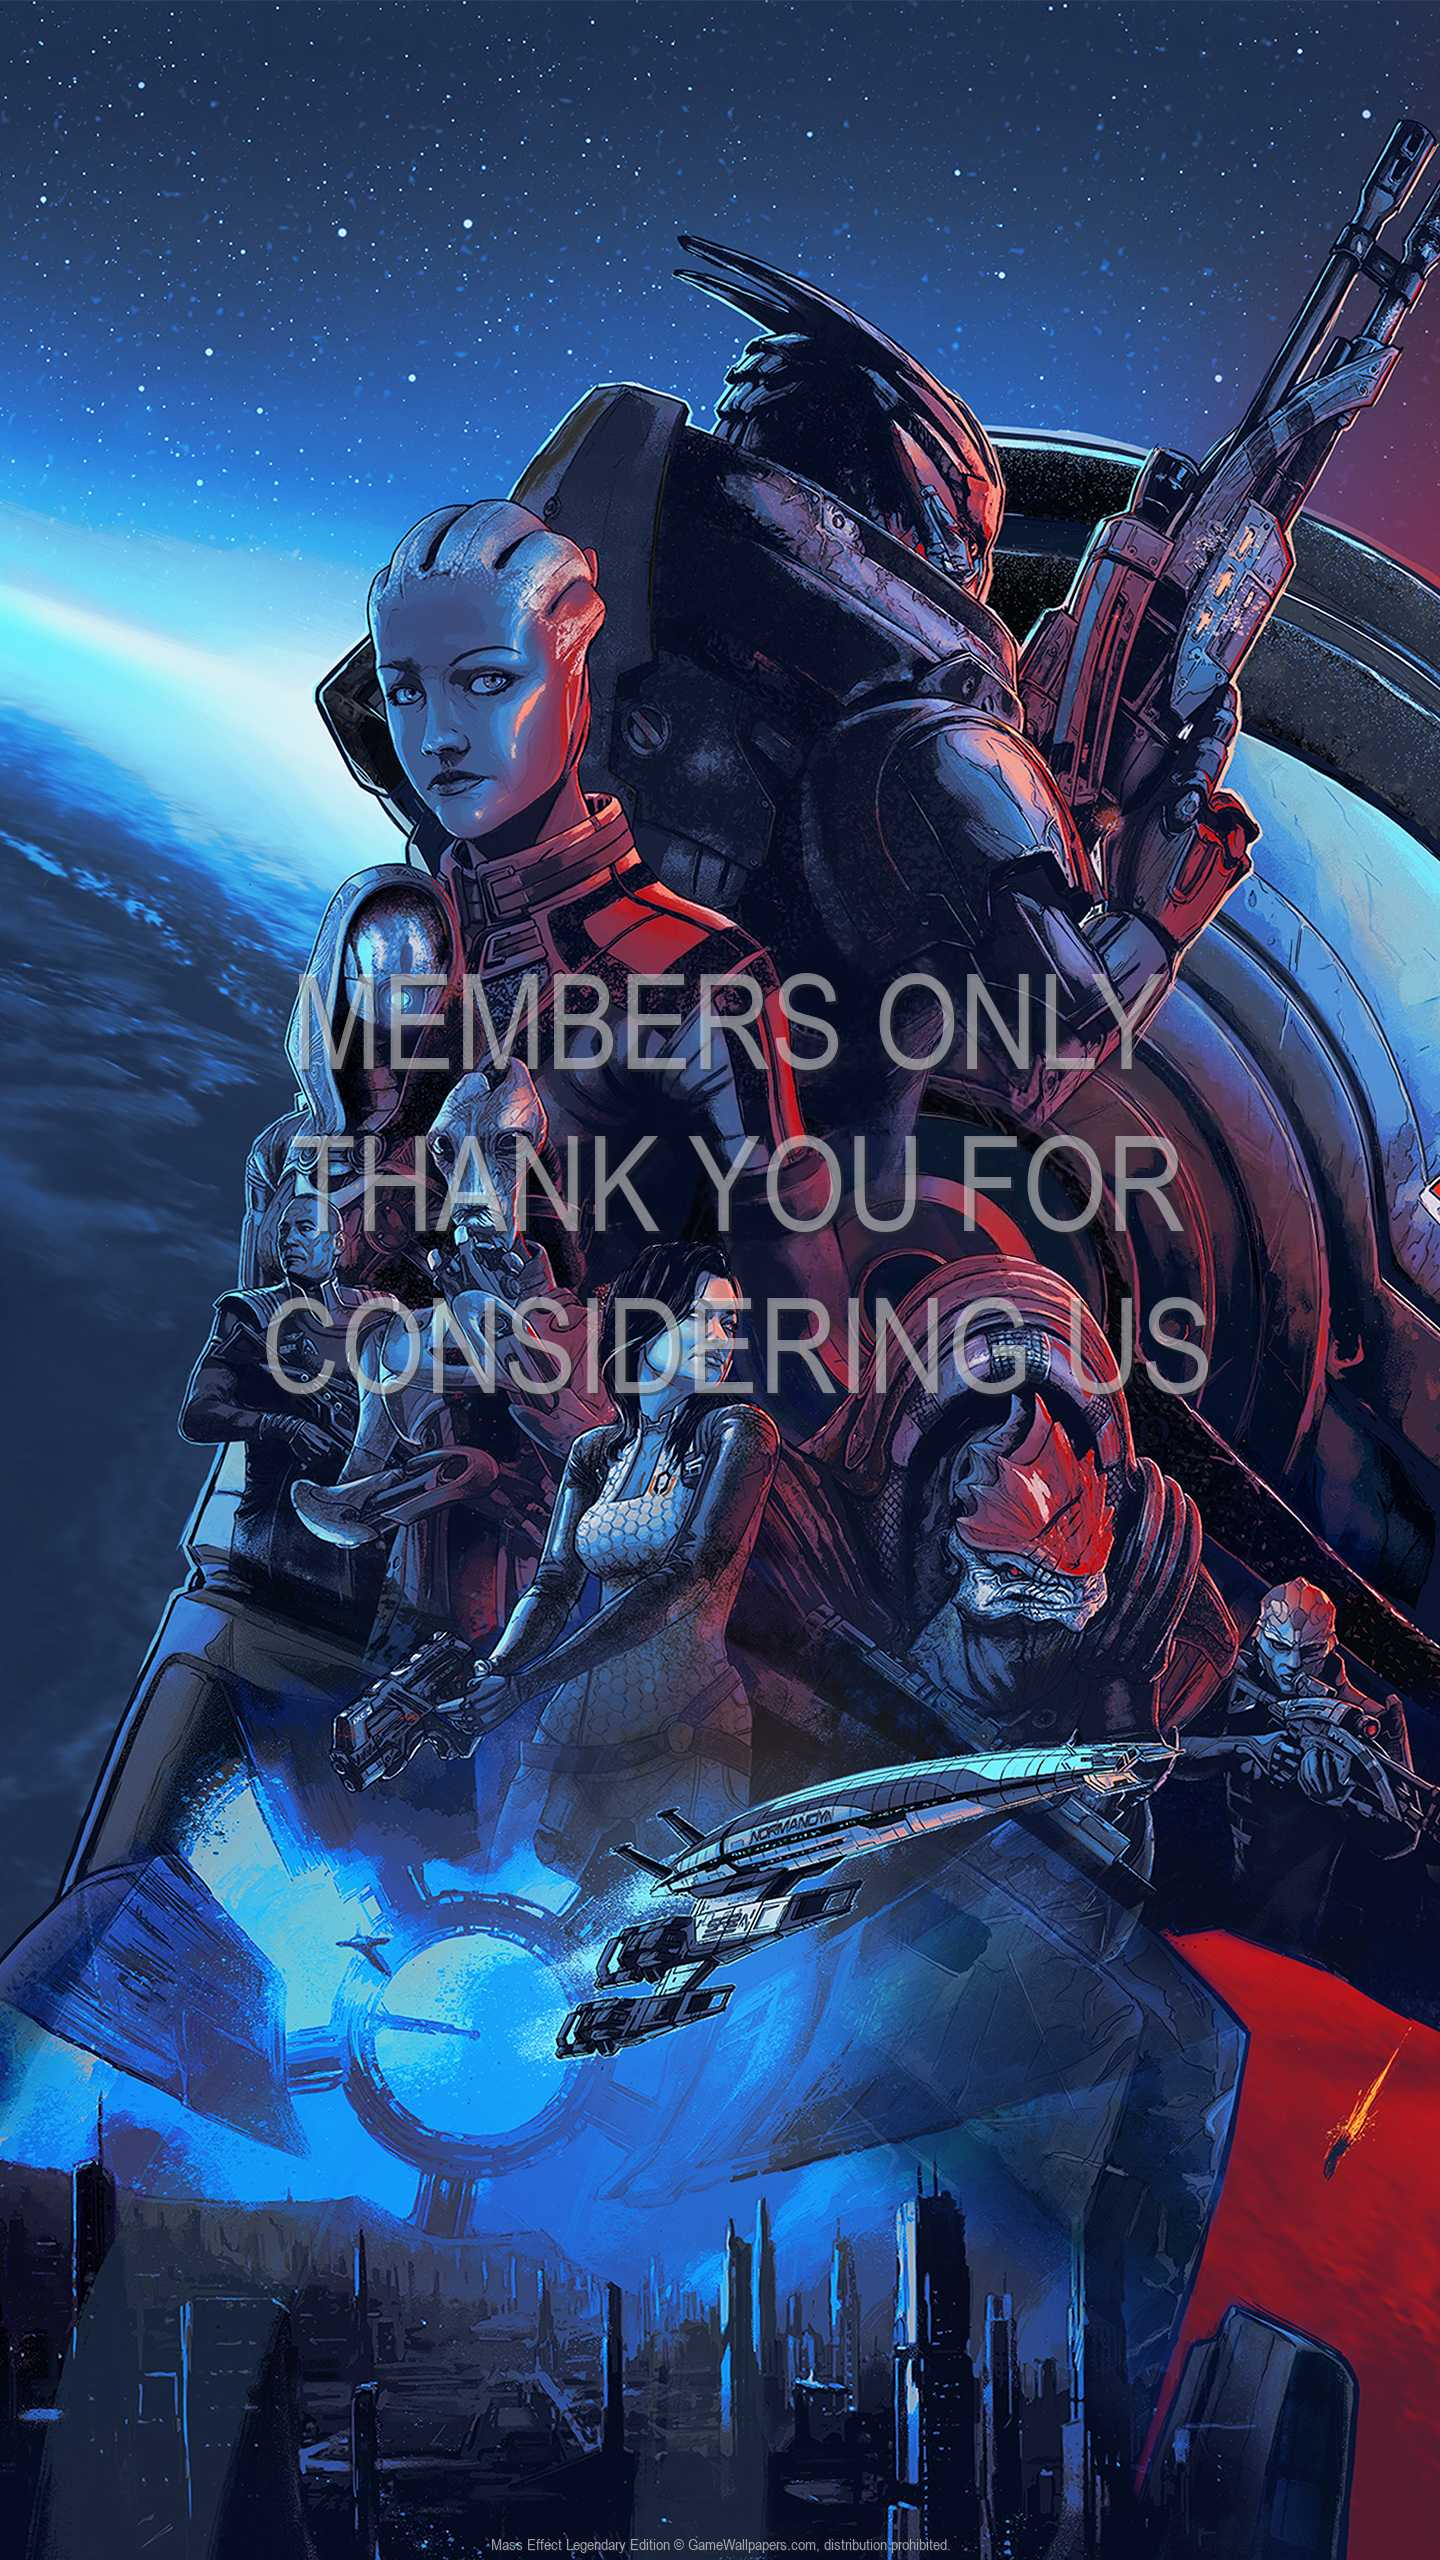 Mass Effect Legendary Edition 1440p Vertical Mobile wallpaper or background 01